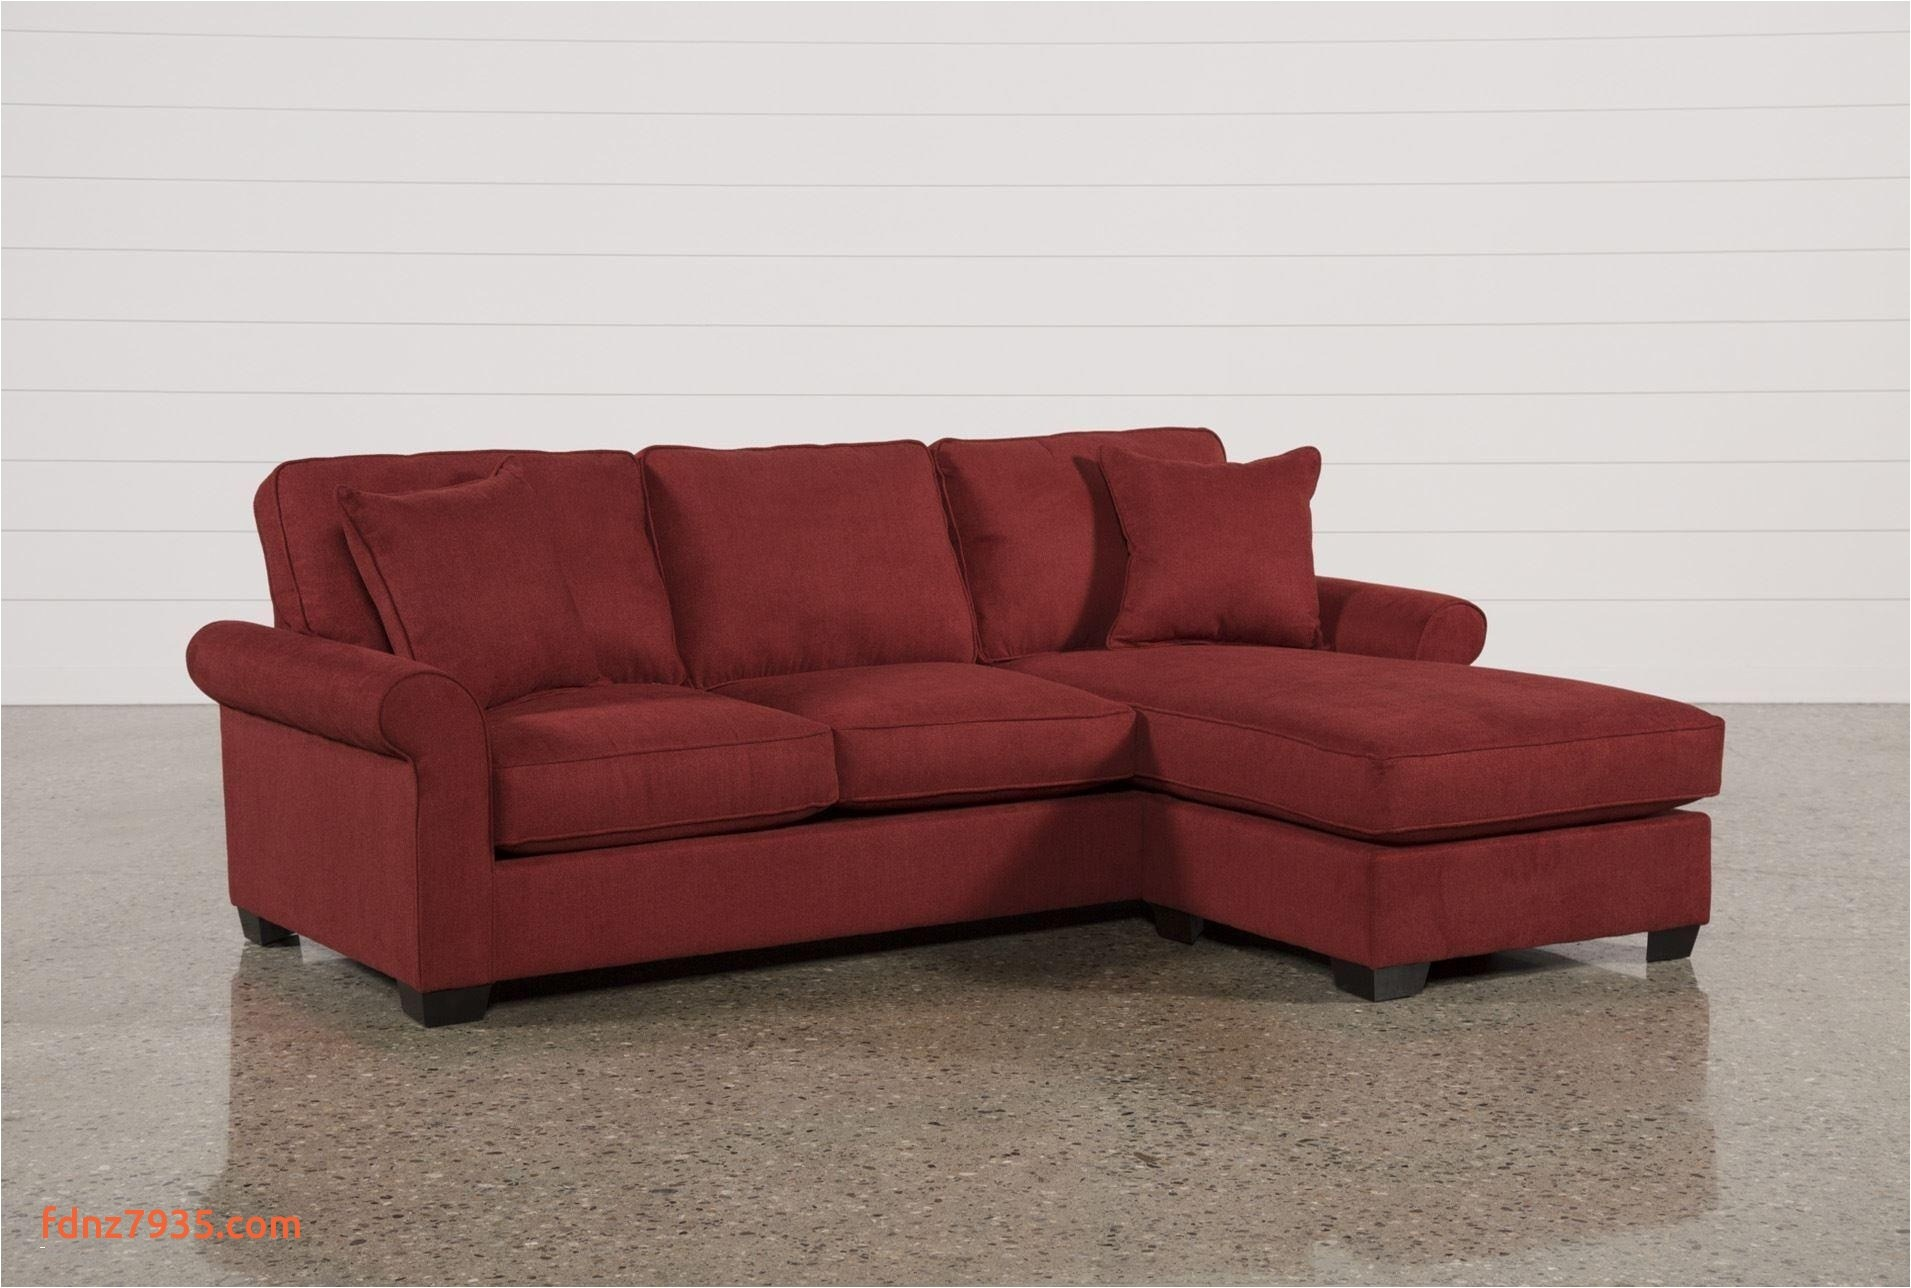 Furniture Best Leather Loveseats Leather Loveseats 0d Furnitures As Regards  Minimalist Chair Wall Decor